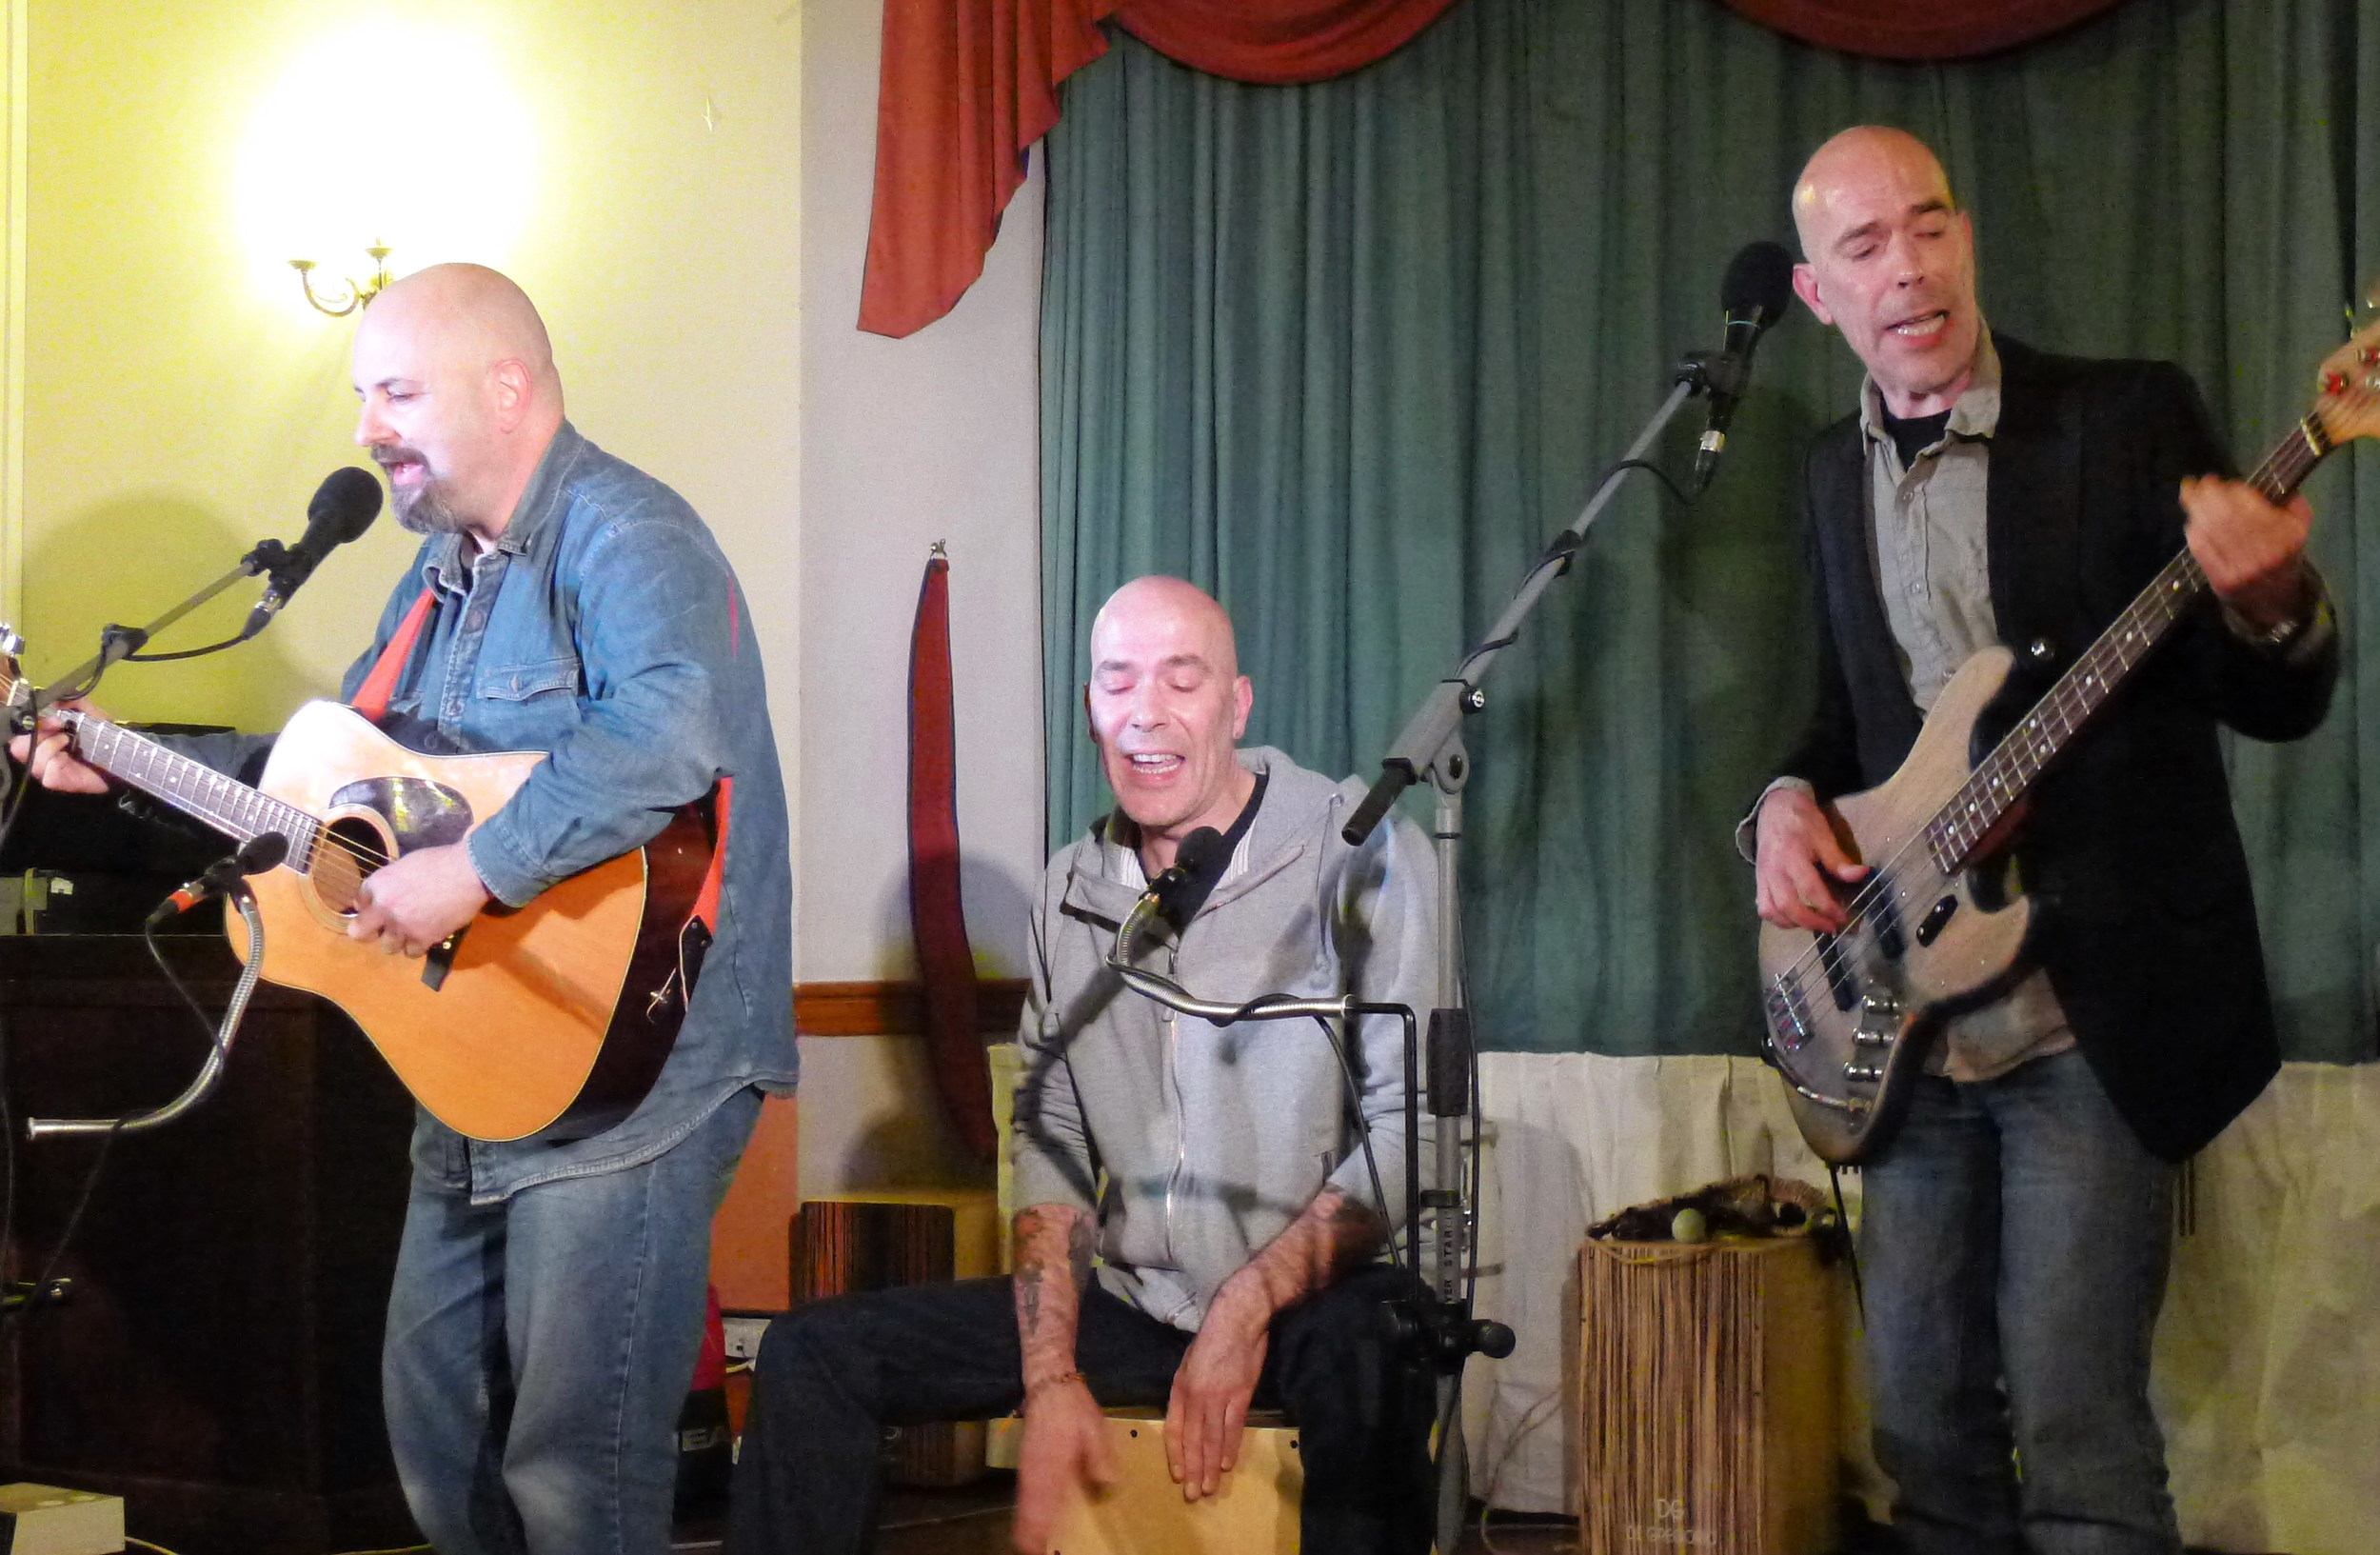 """Guano performing at """"Live Acoustic Special"""" at The Priory, in Nanpantan, near Loughborough, Leicestershire. This event was promoted and hosted by Howard Coleman. Big thanks to Howard for these recordings."""